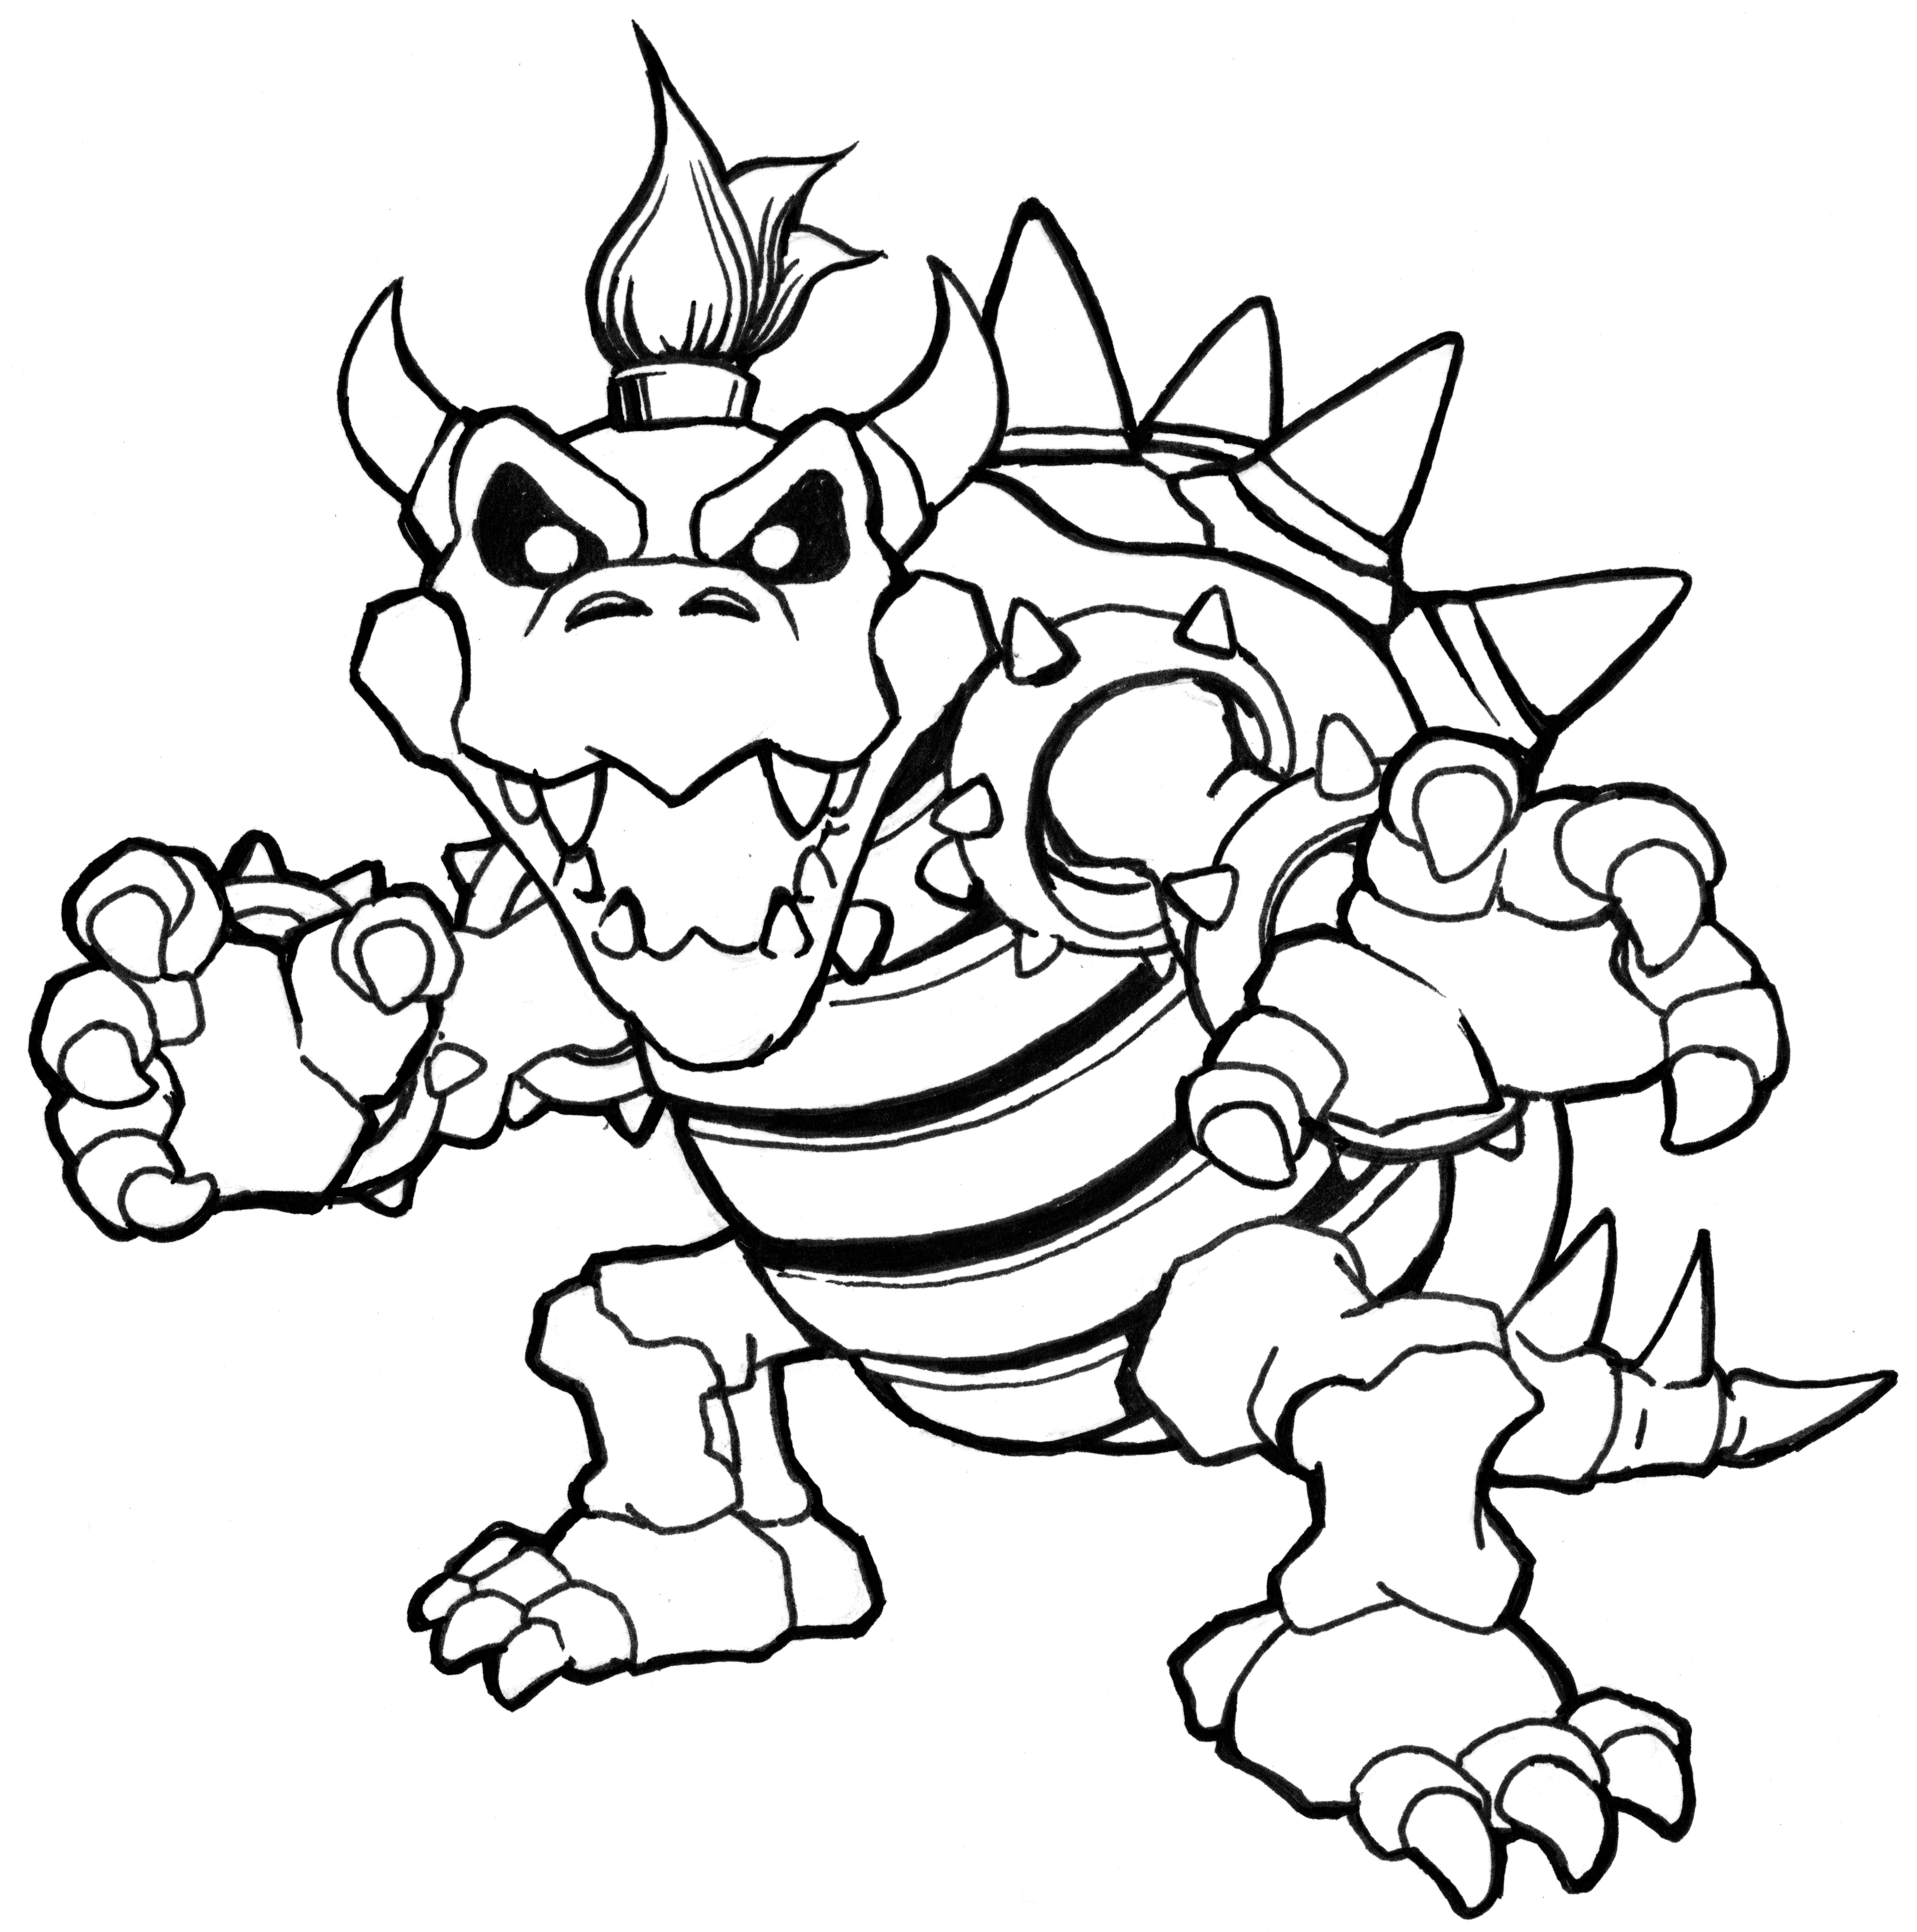 Dry Bowser Coloring Pages Free Mario Coloring Pages Super Mario Coloring Pages Cartoon Coloring Pages